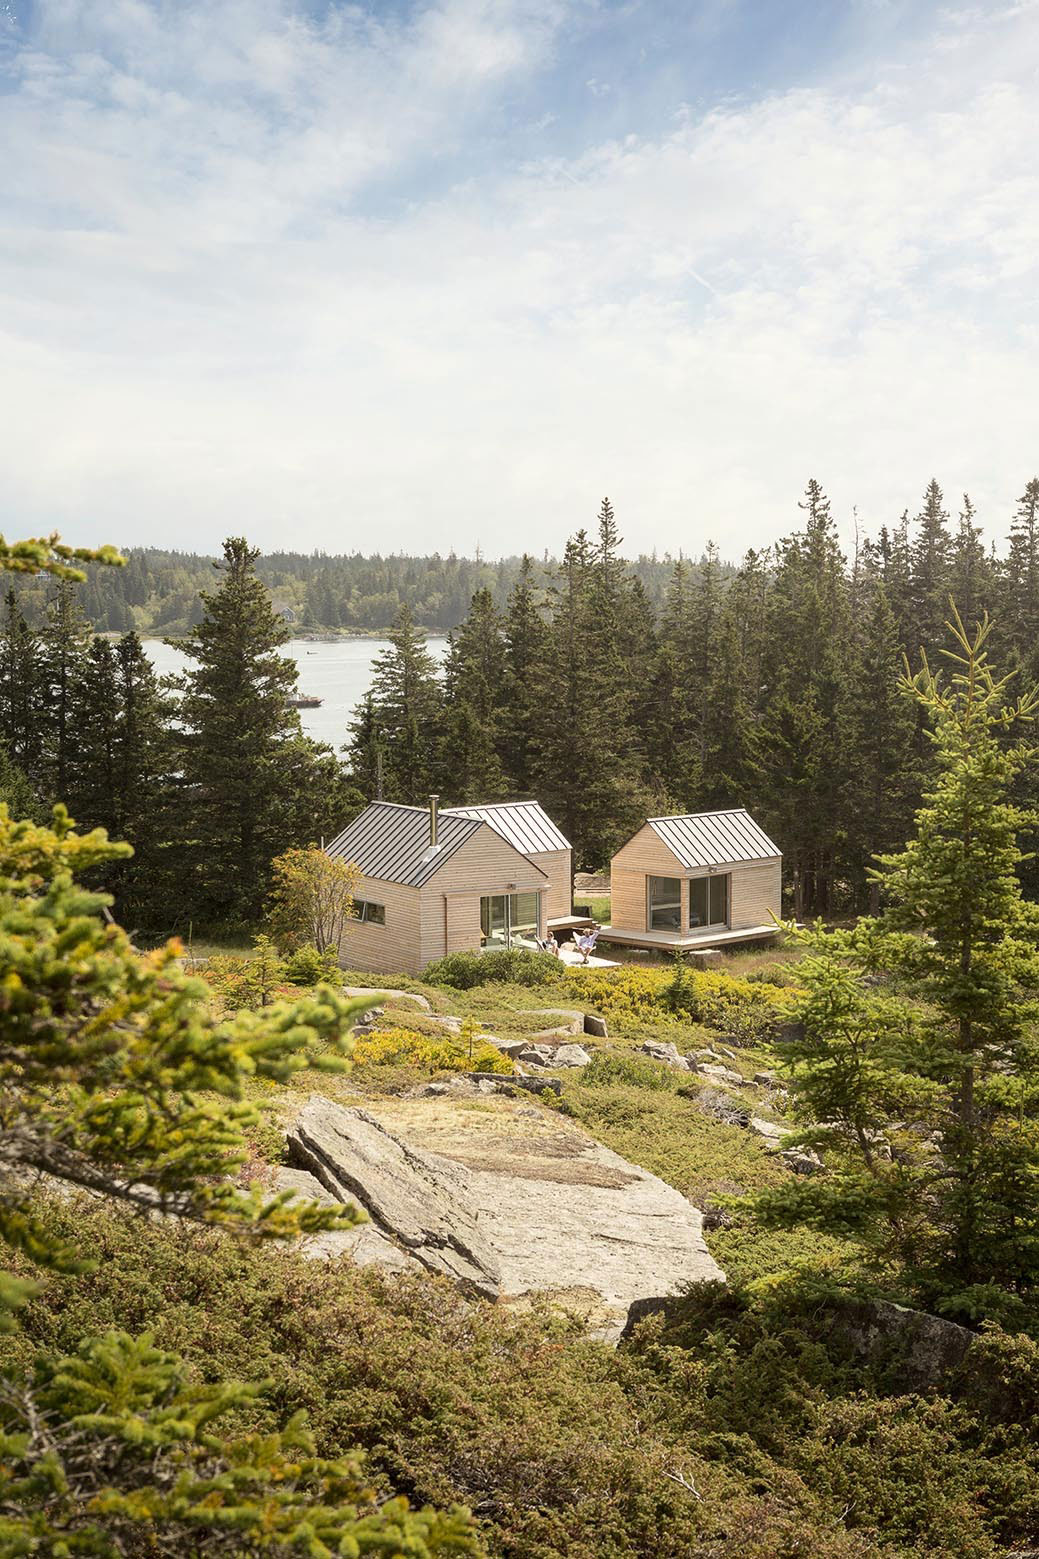 A Little House By A Lake Surrounded By Trees In Maine